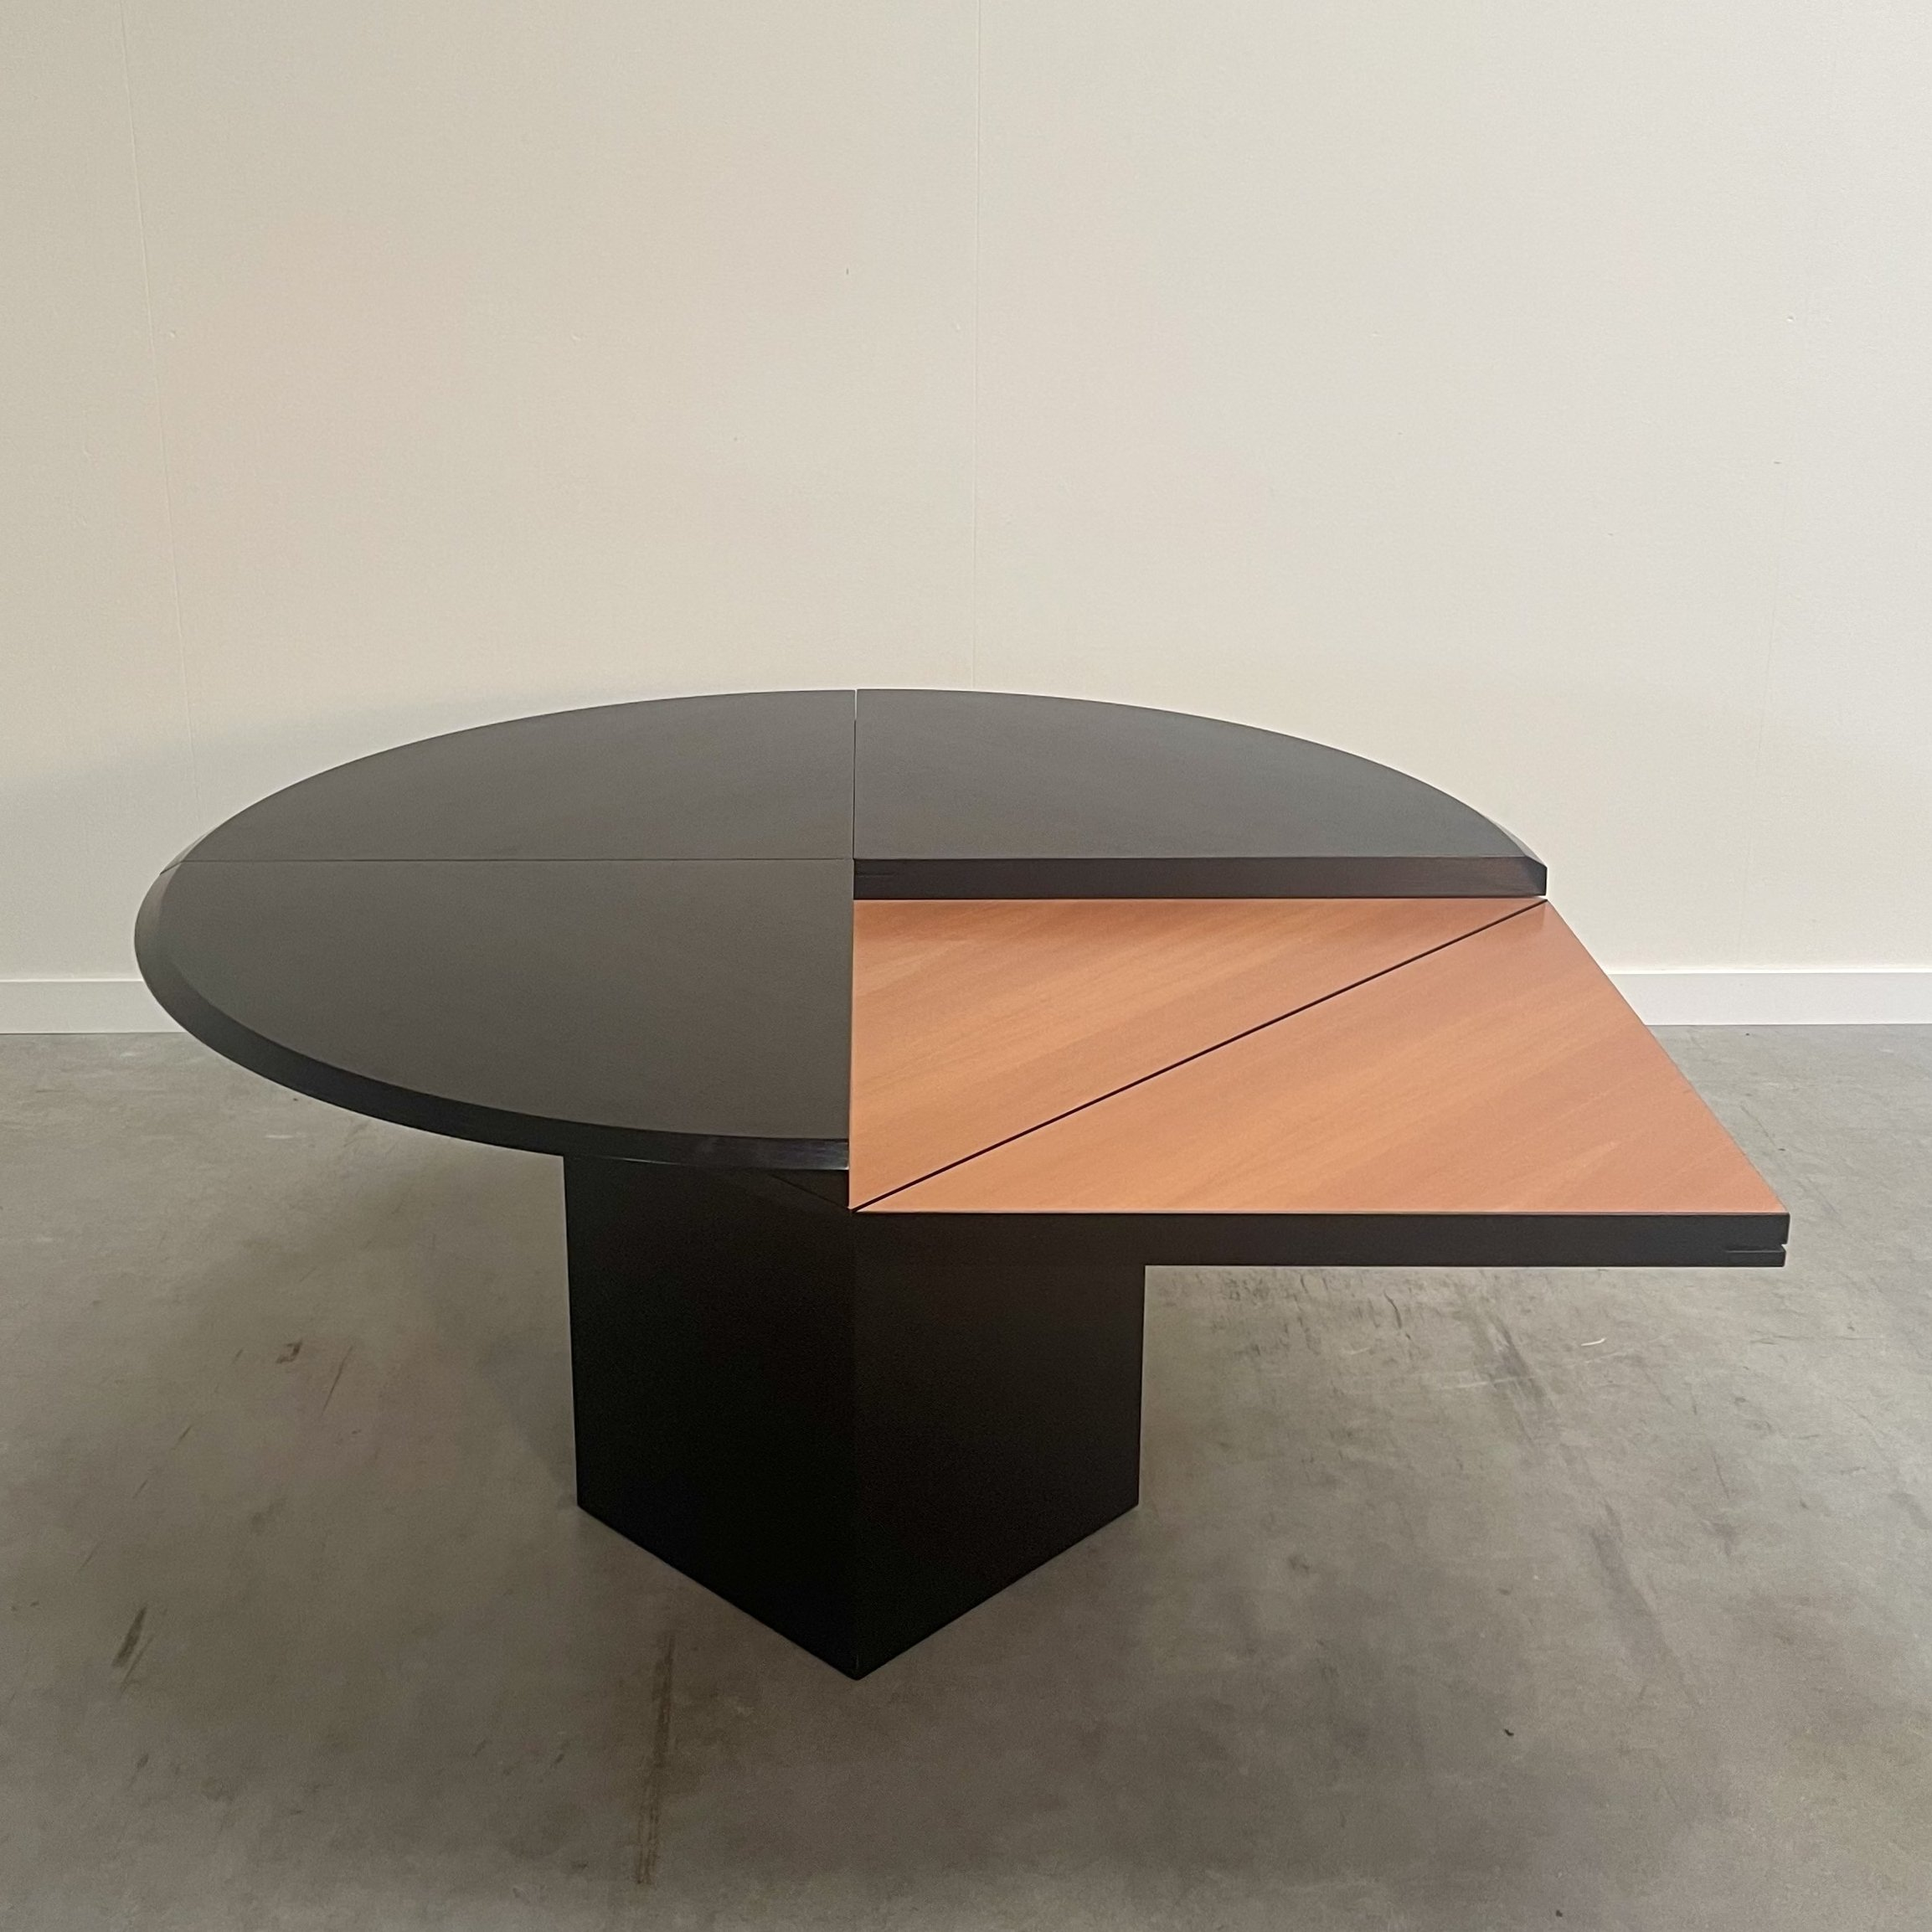 Large Round Square Quadrondo Dining Table By Erwin Nagel For Rosenthal 1980s 156103